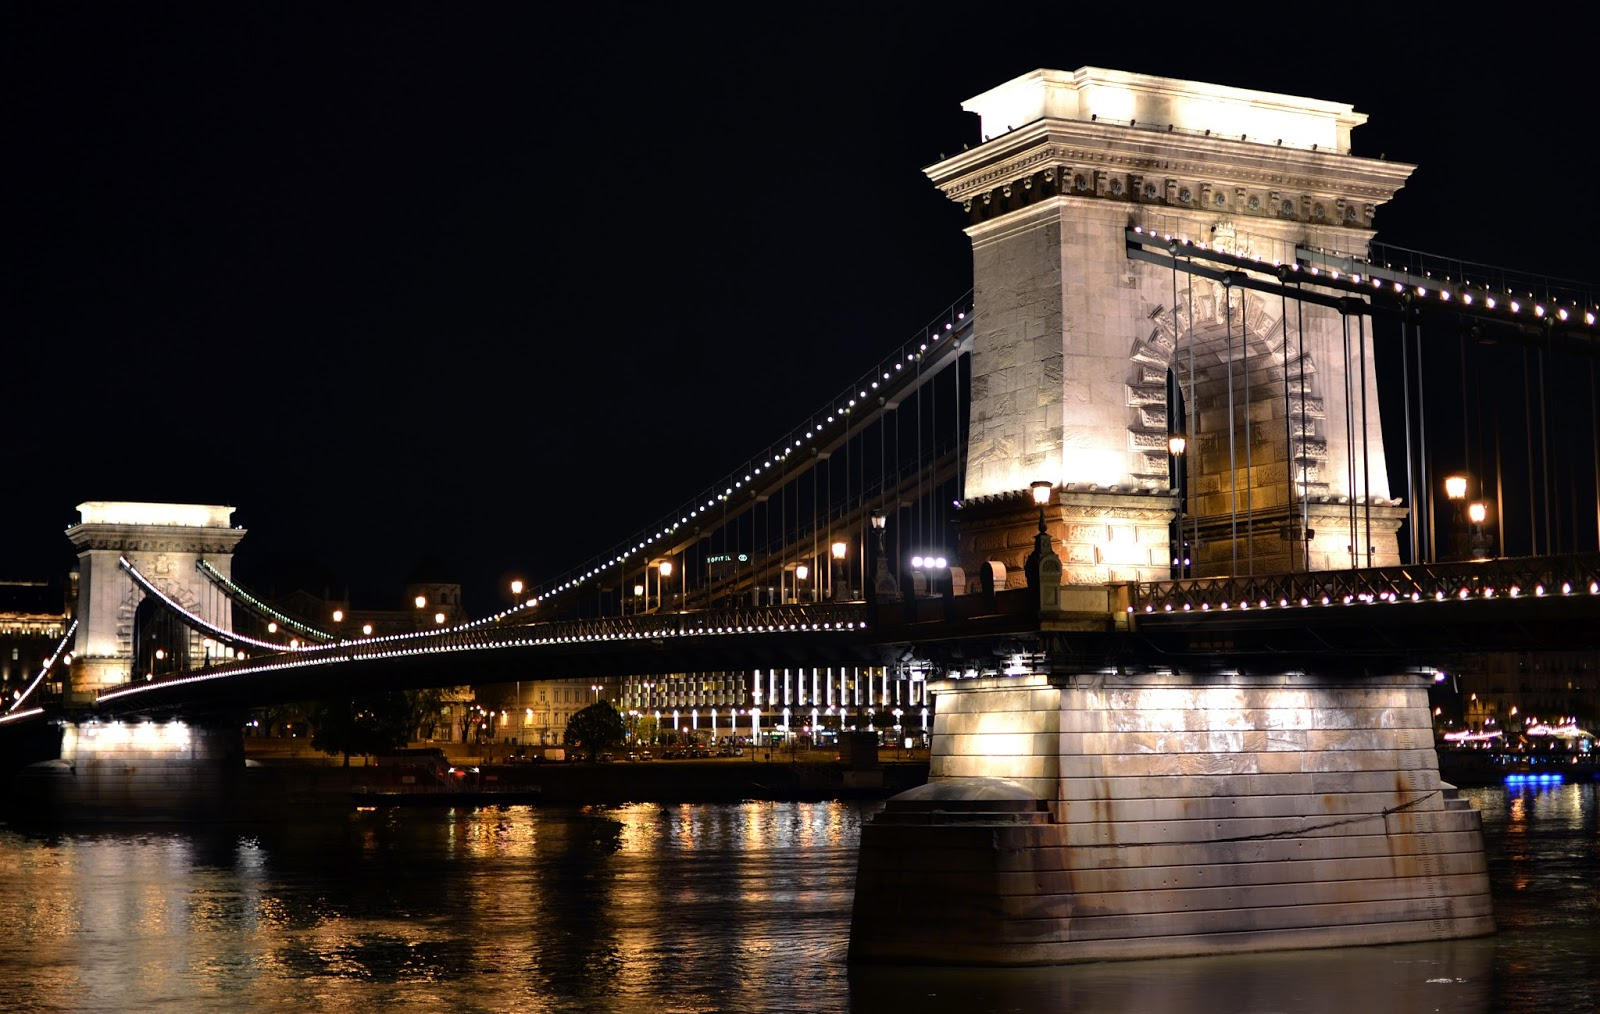 chain bridge at night, budapest, danube, hungary, eastern Europe, photography